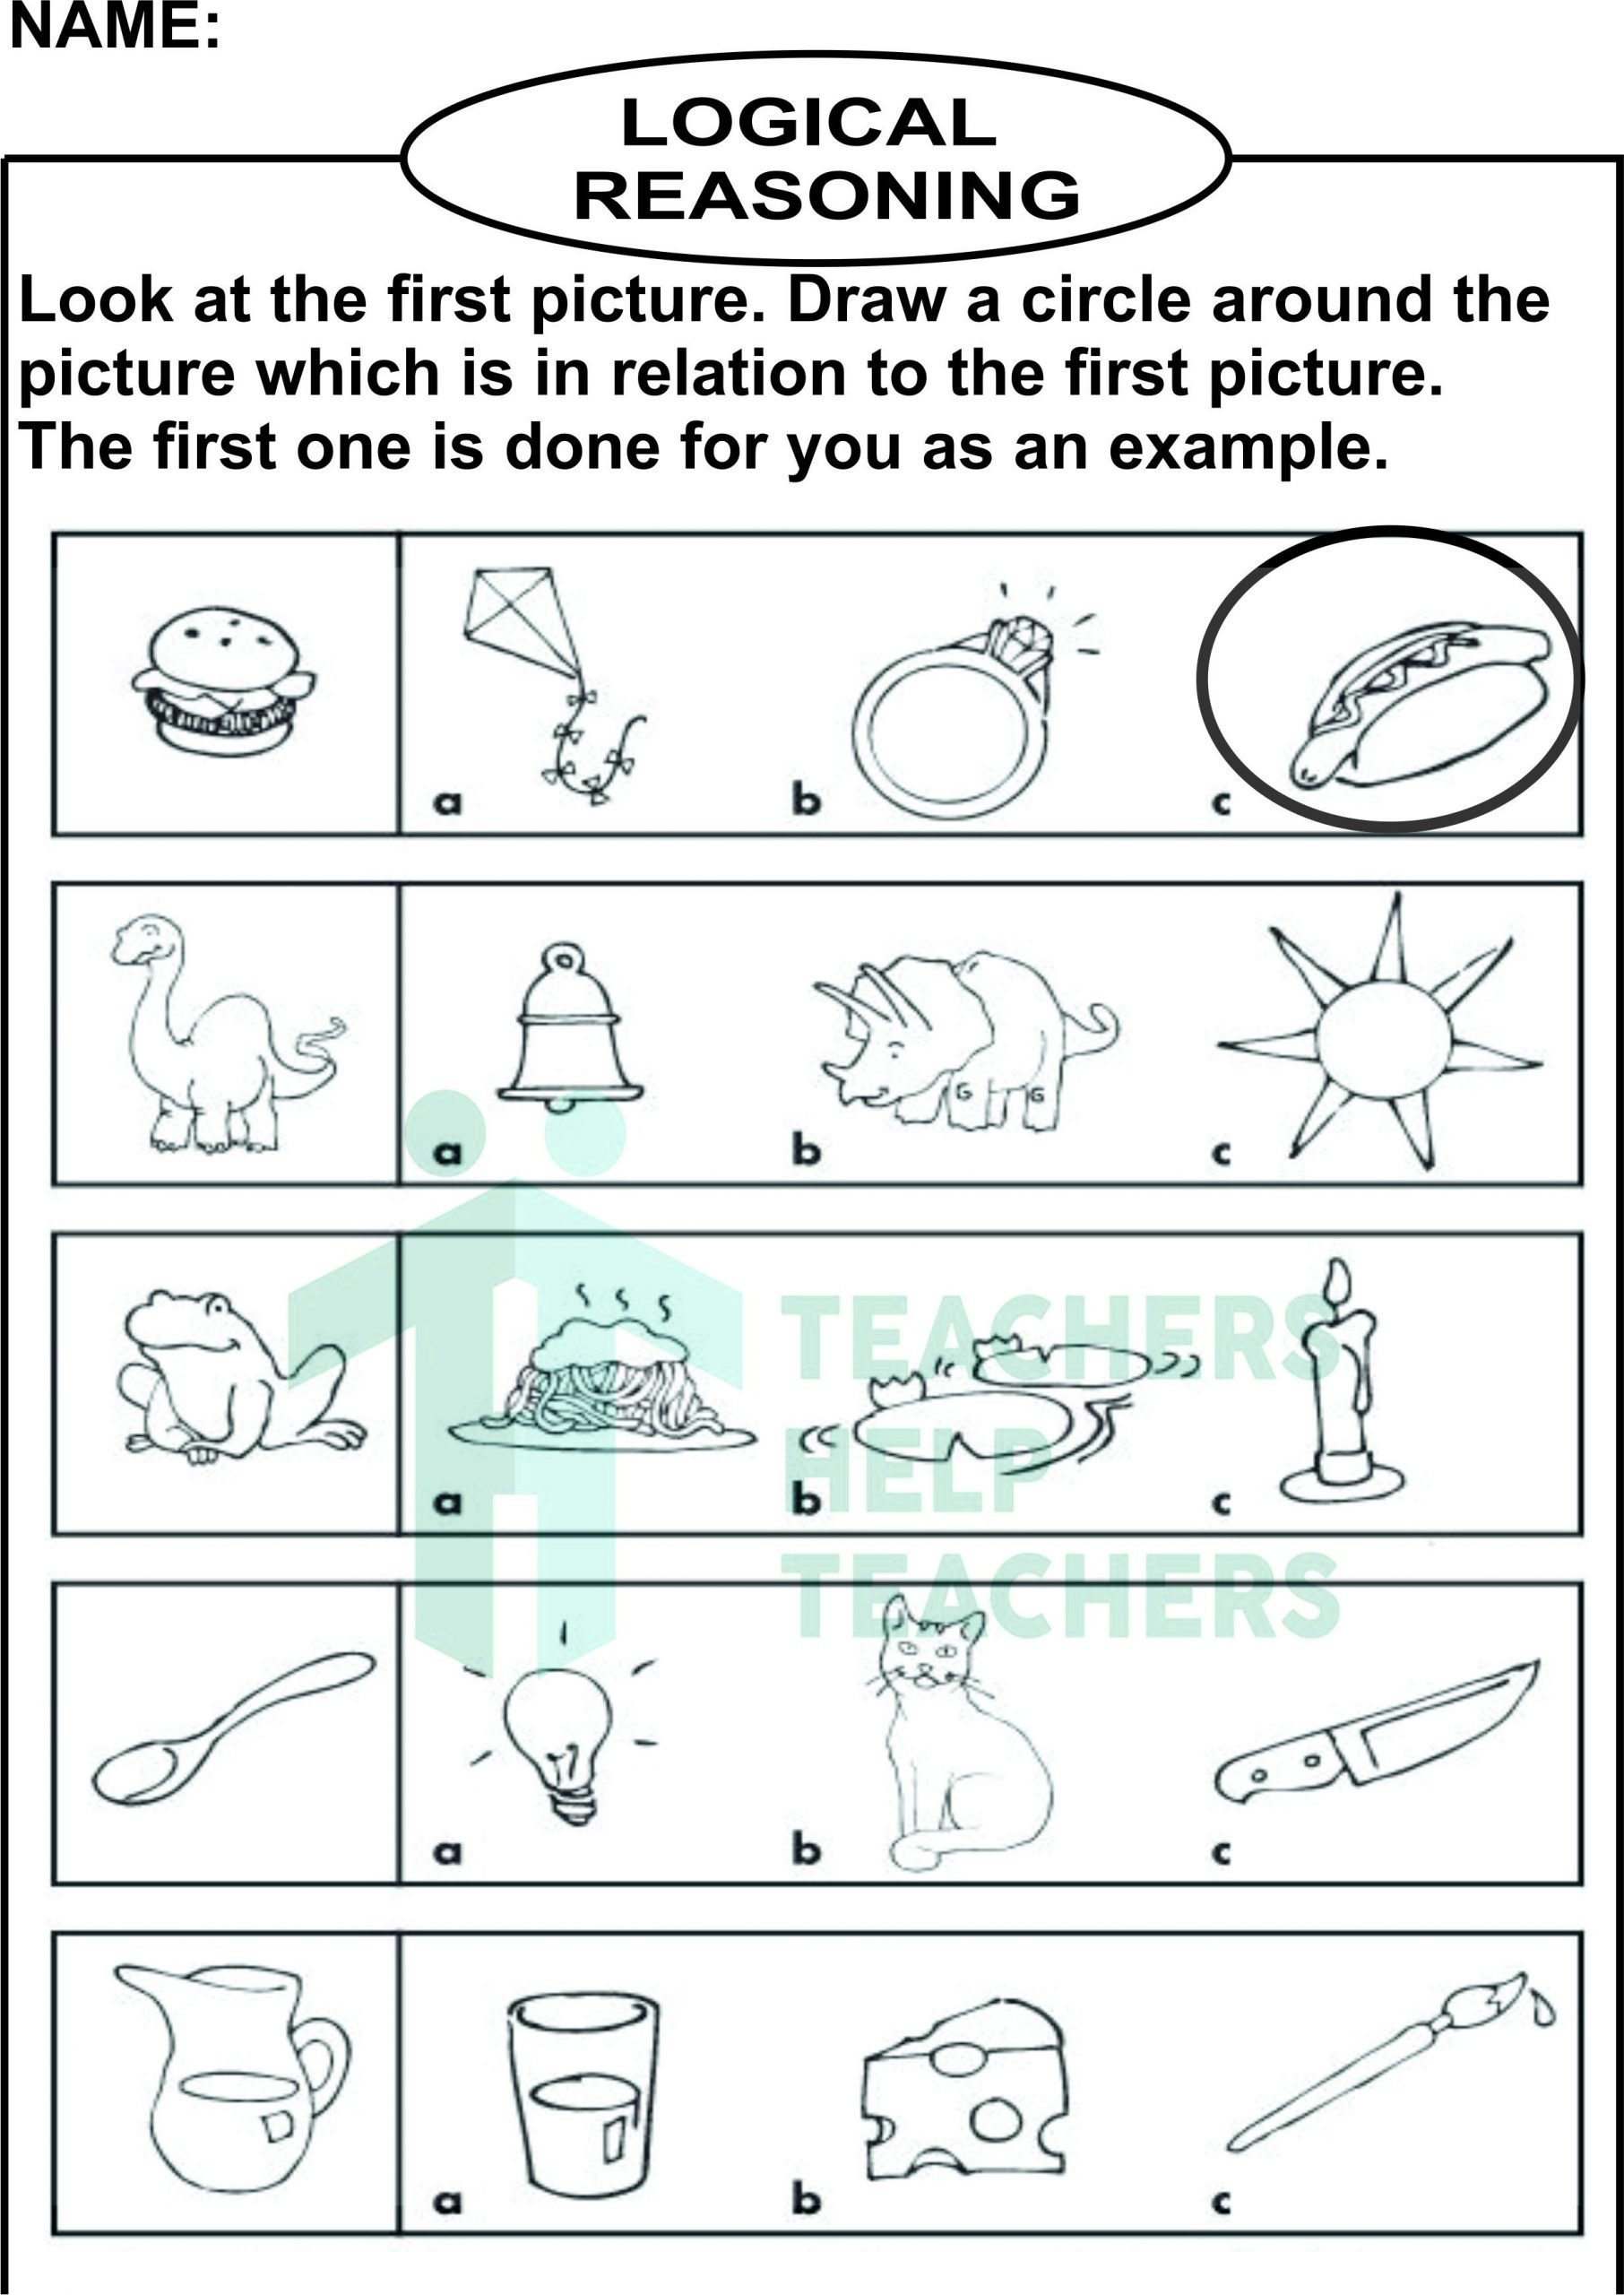 Reasoning Worksheets for Grade 1 Olympiad Practice Worksheets Logic Set 2 Grade 1